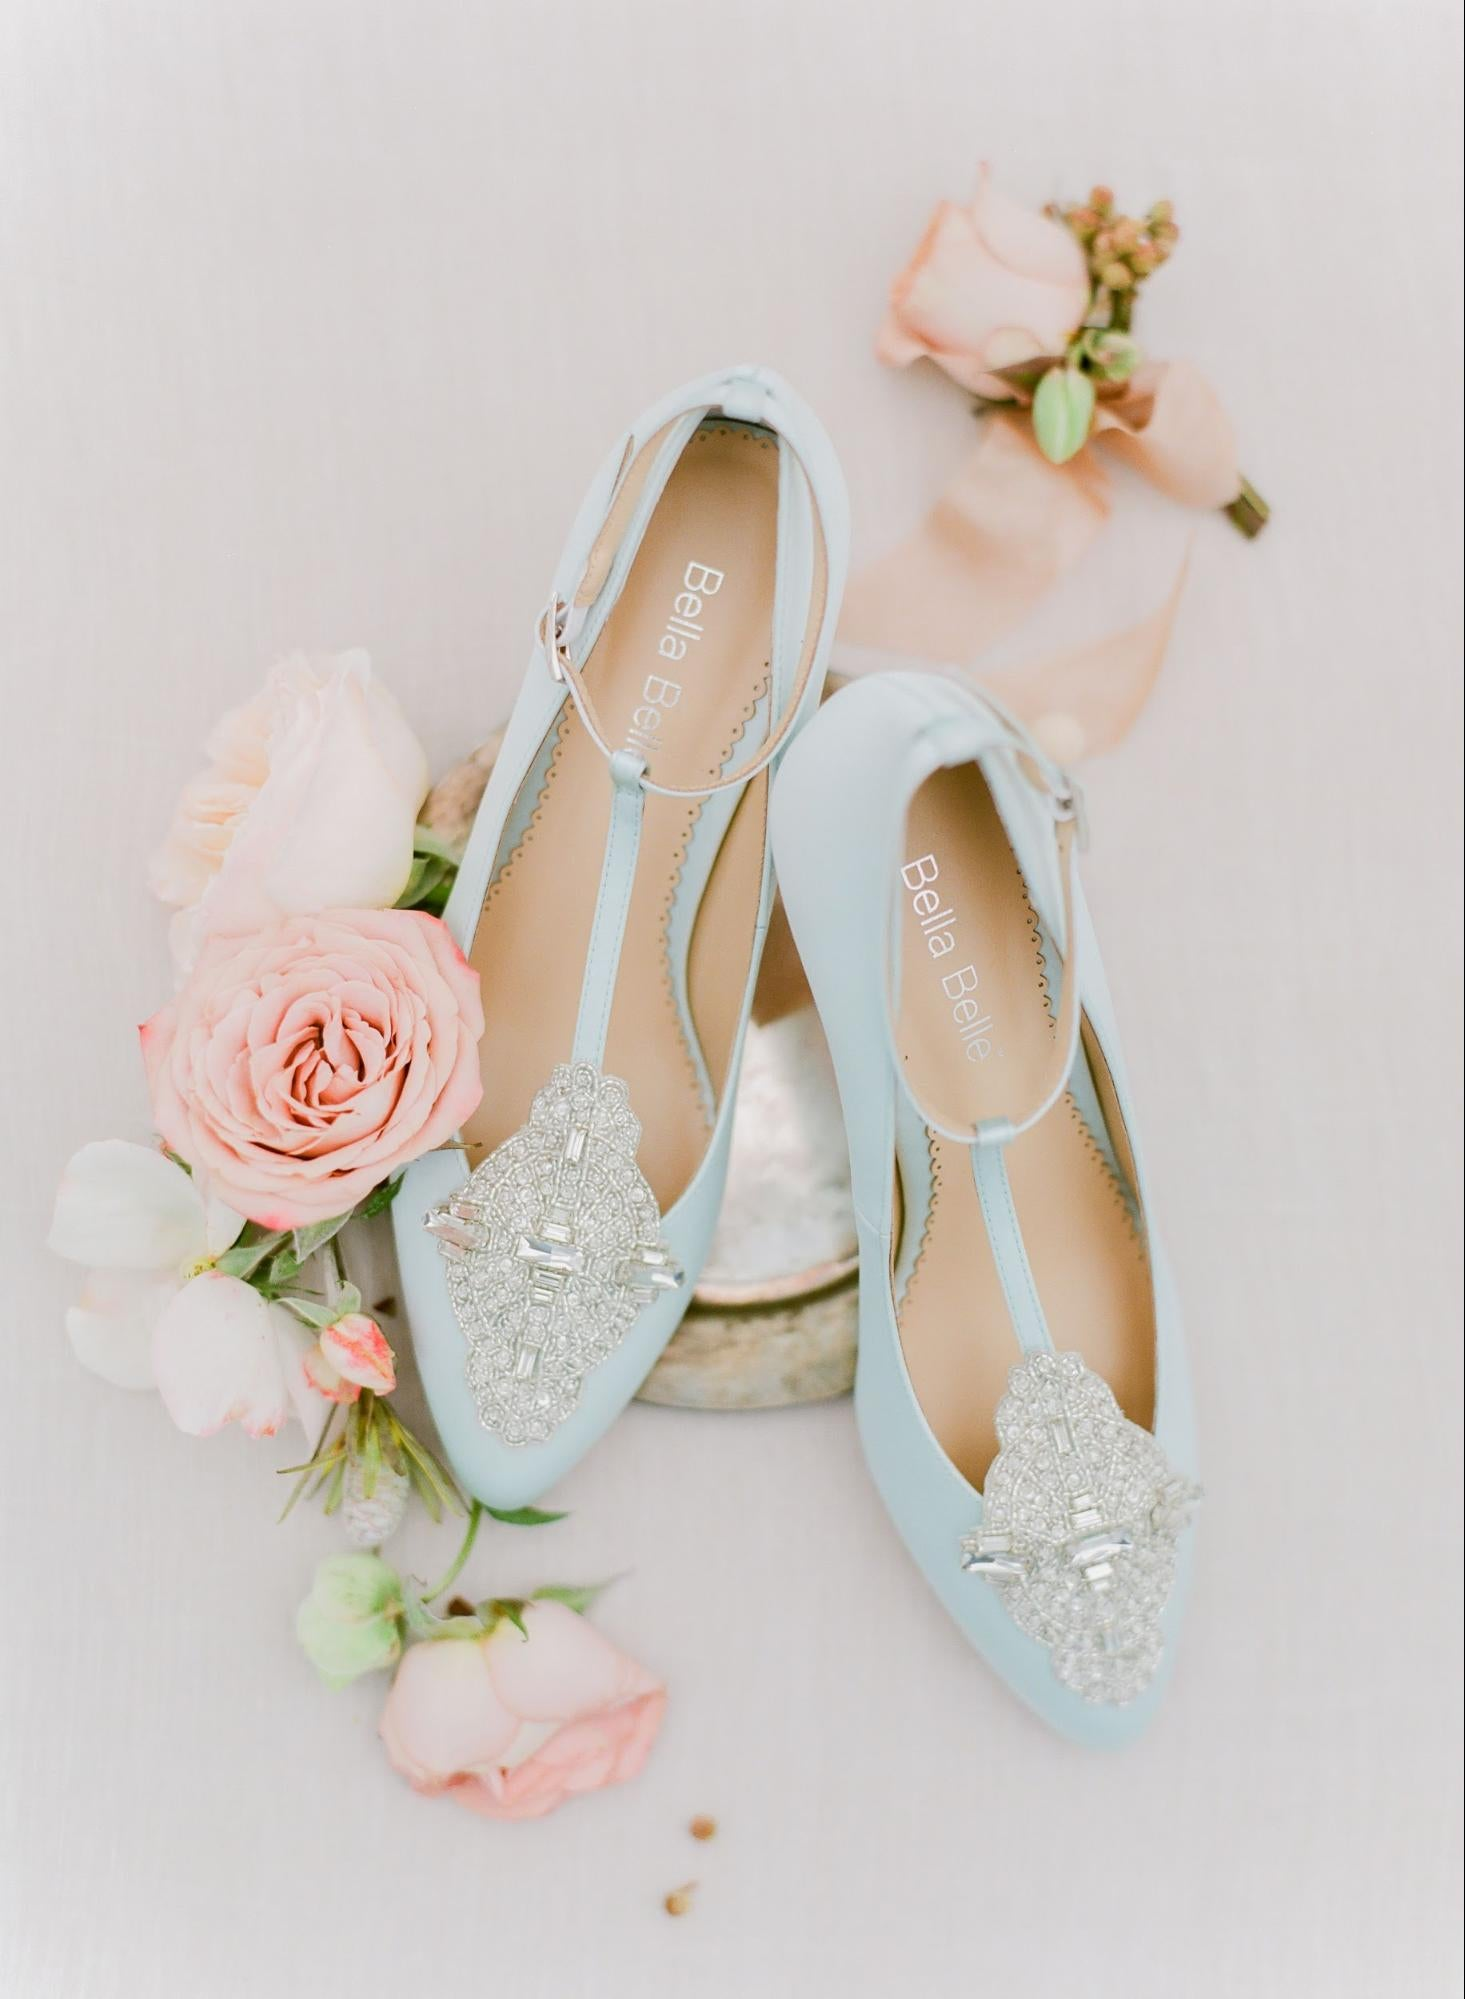 The Annalise Blue shoe.